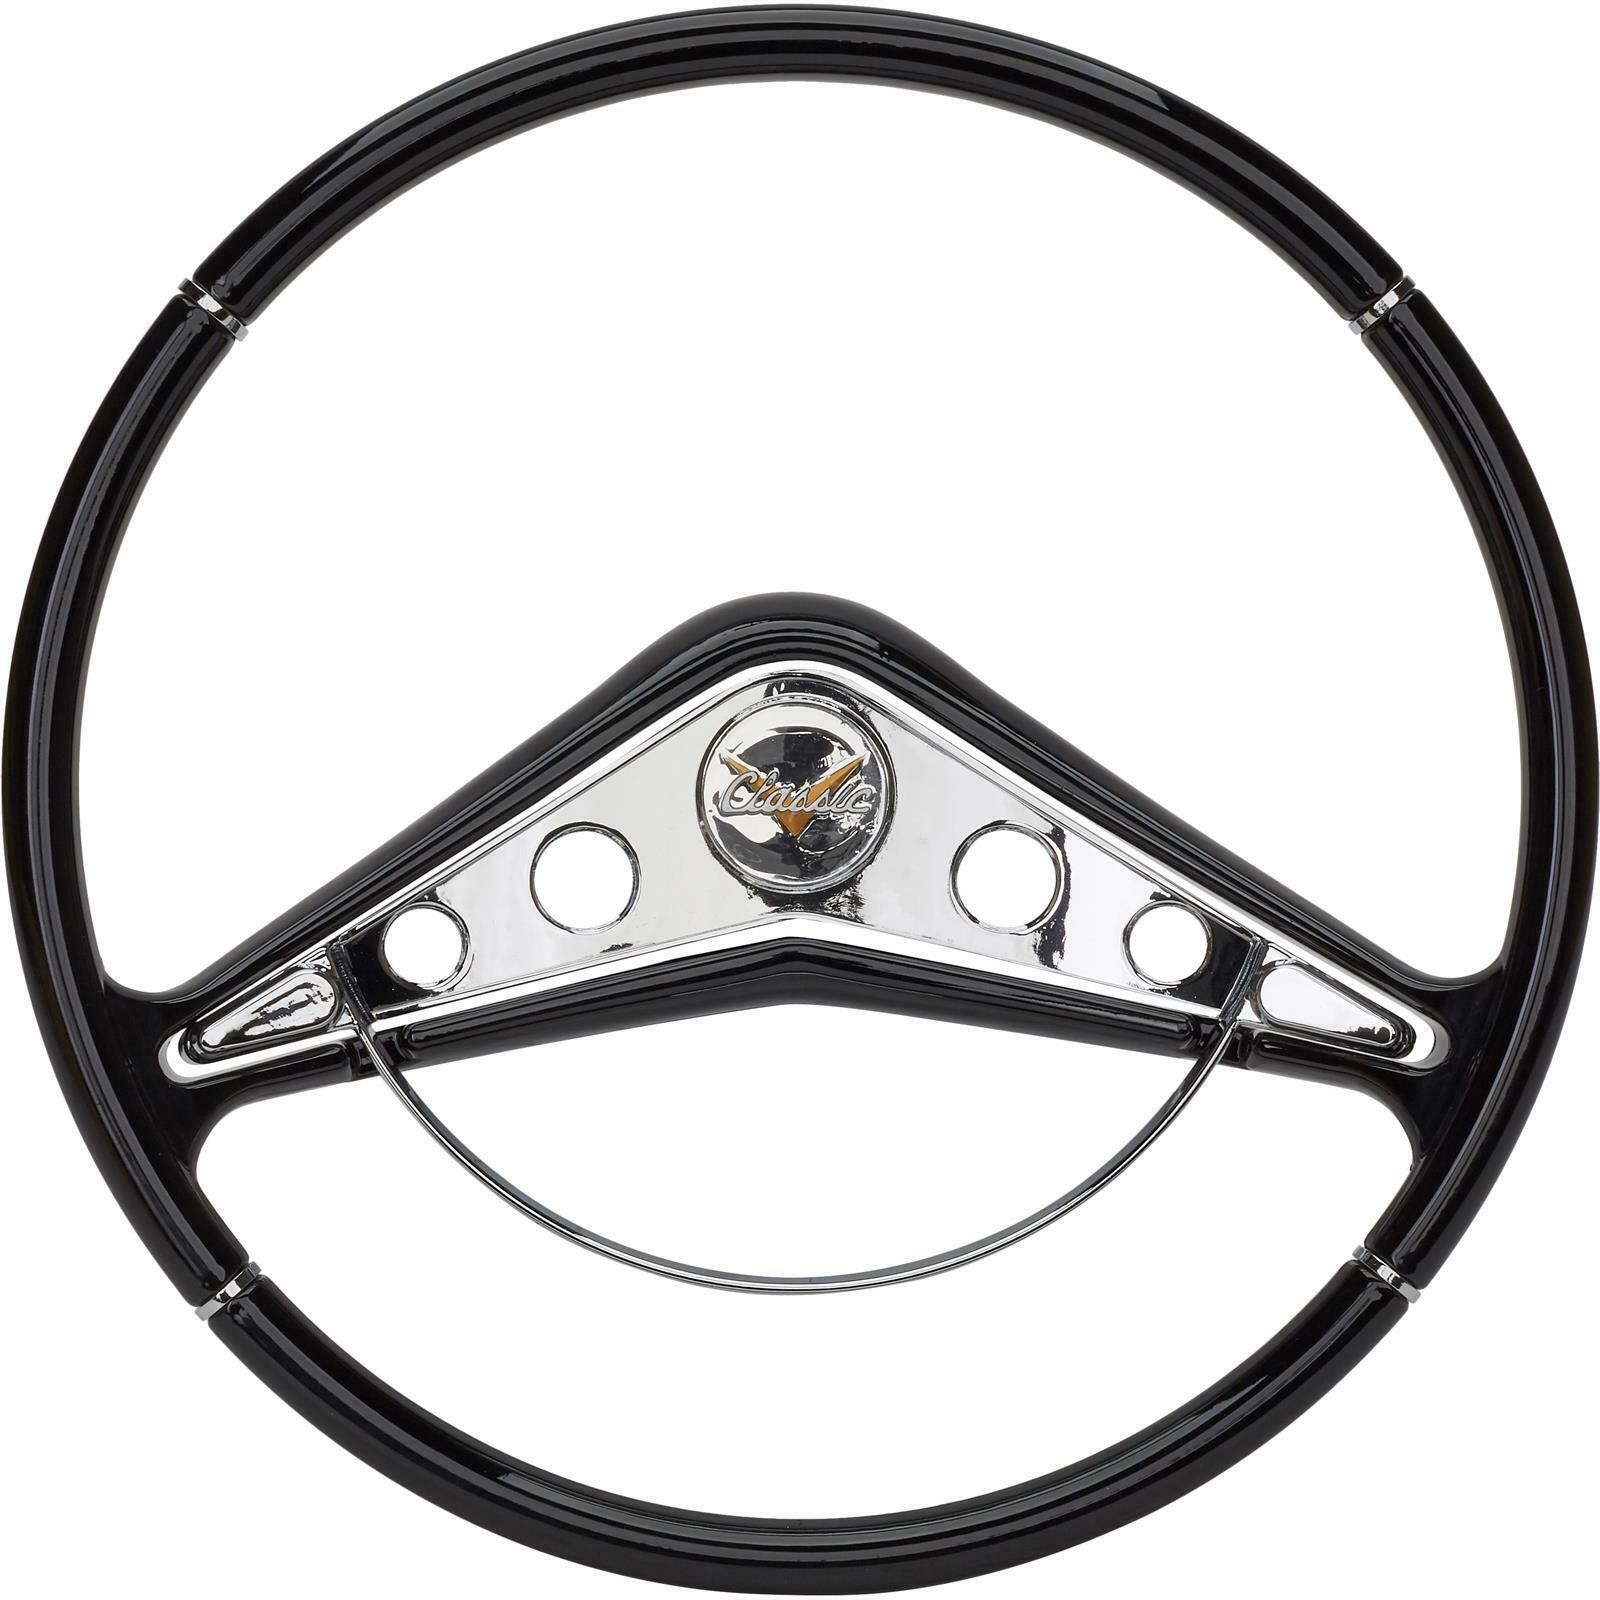 American Retro RP-20003 1958-60 Steering Wheel AMRET028